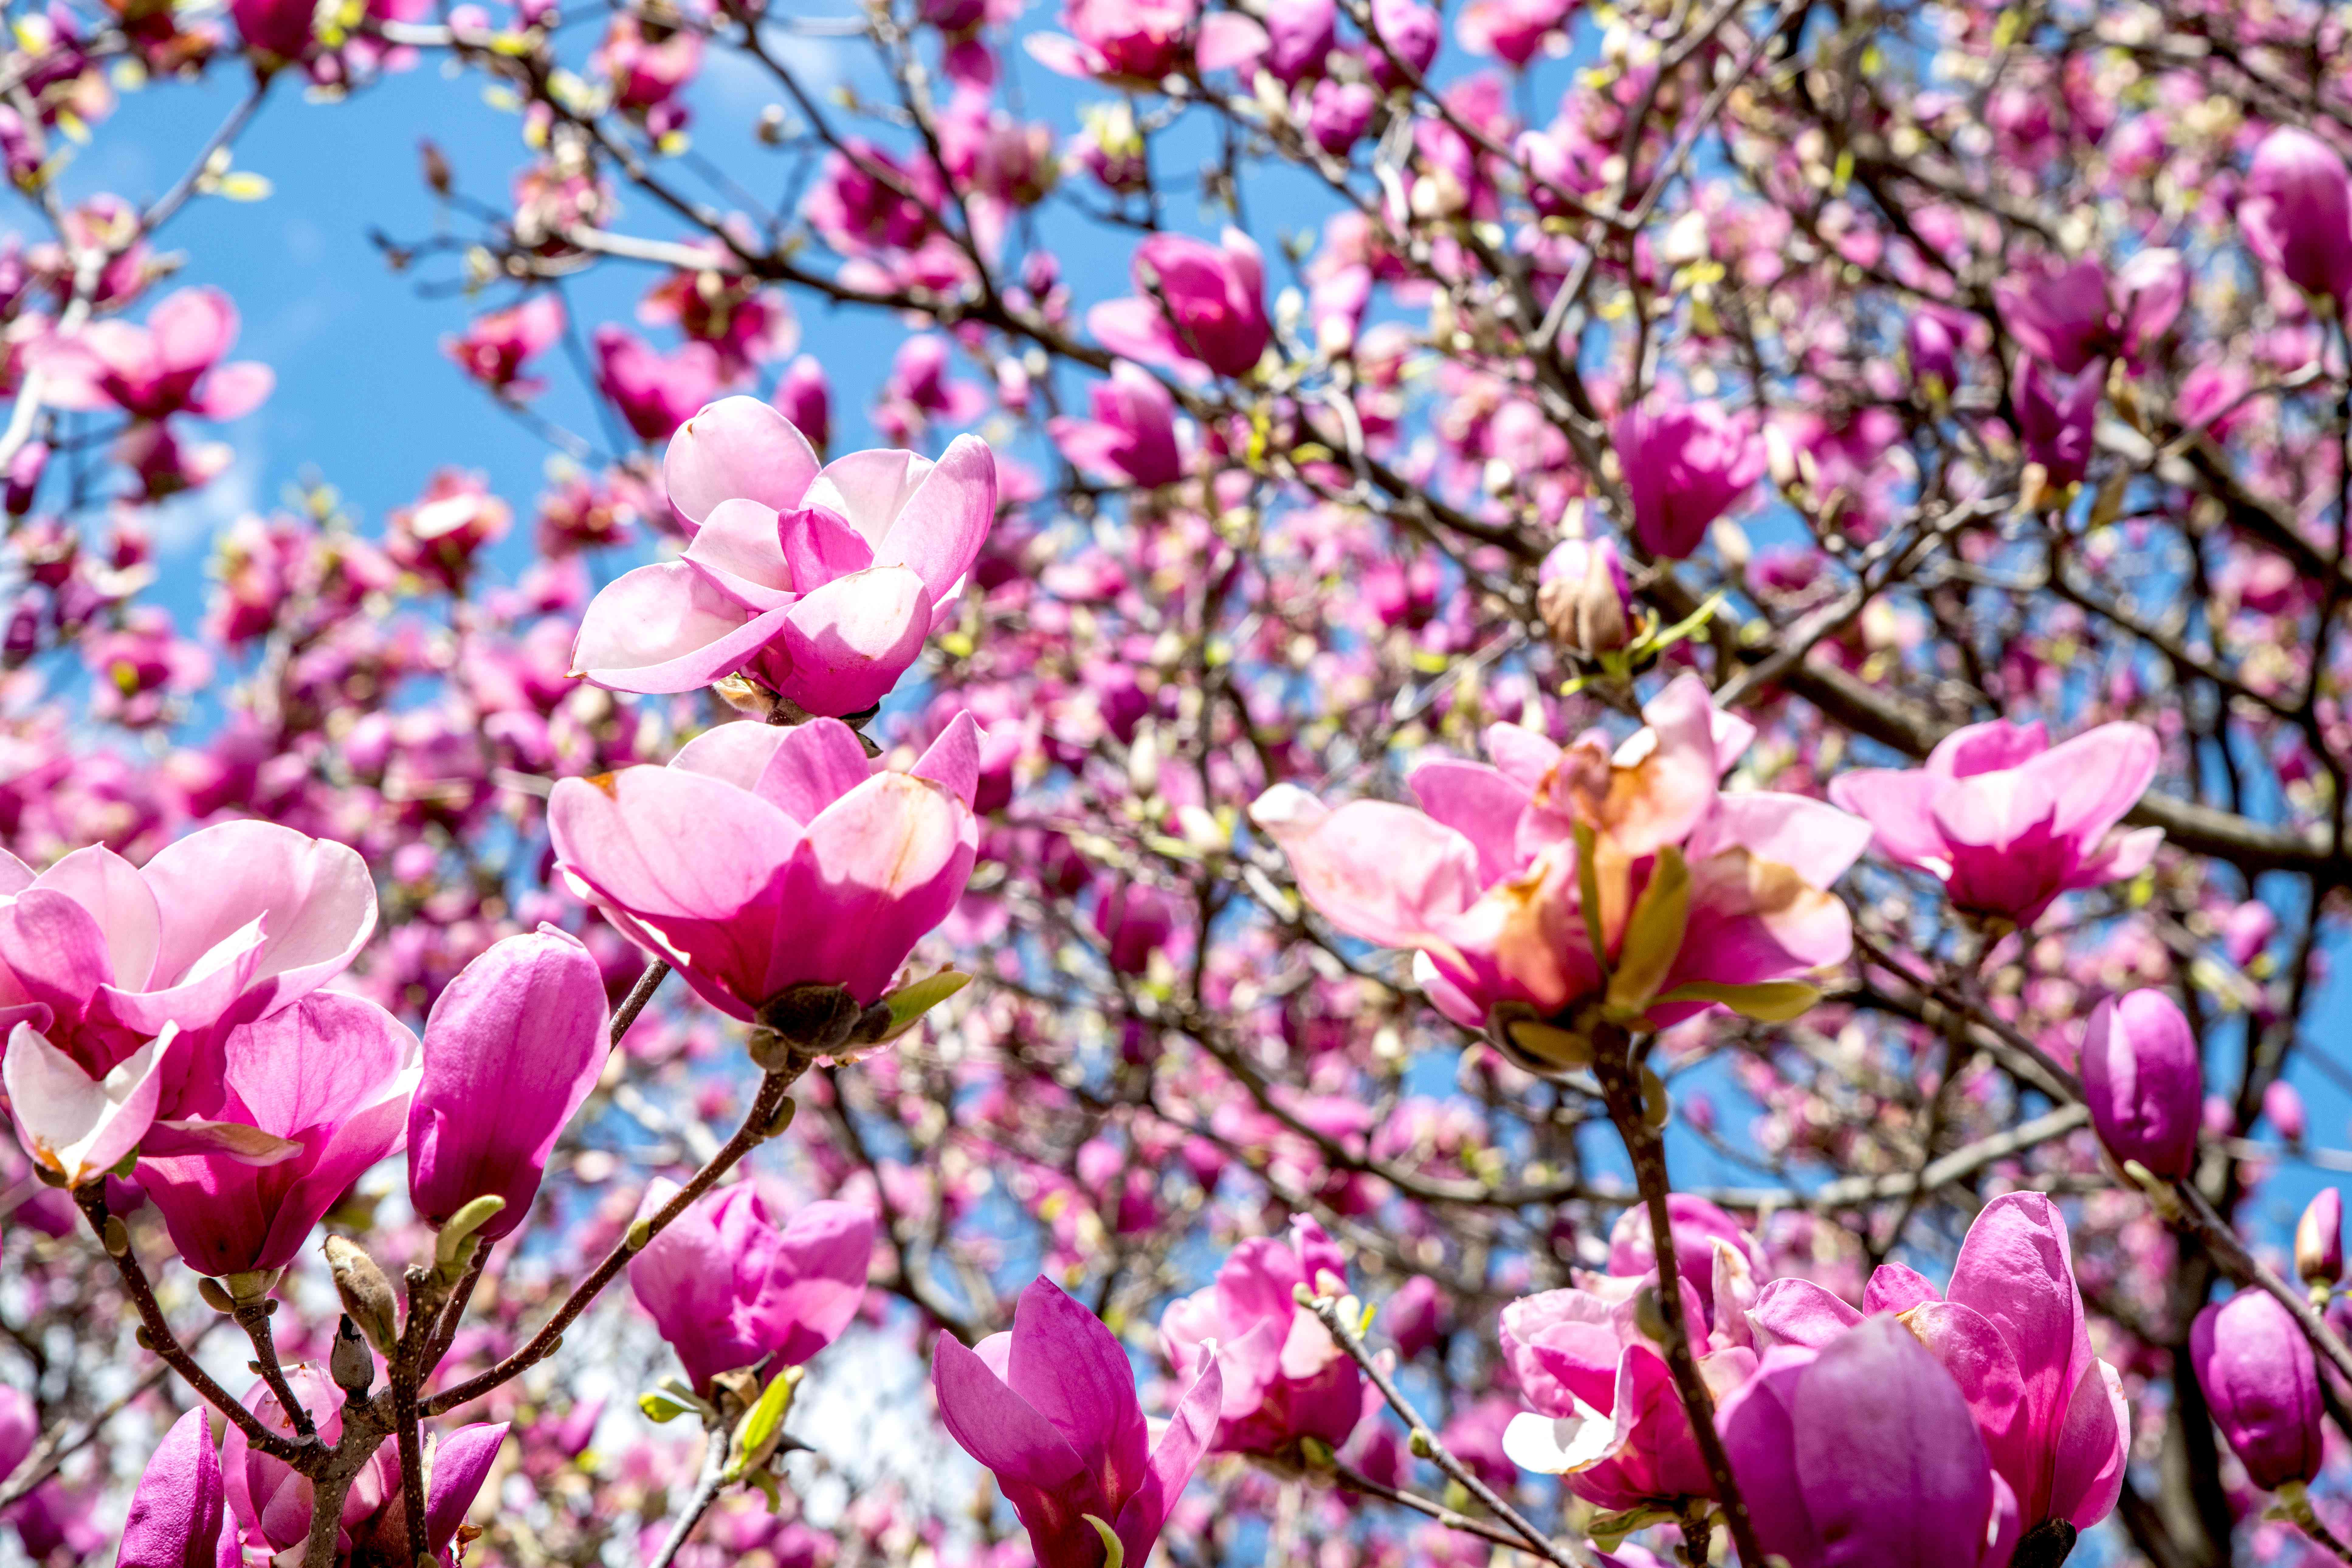 Magnolia 'Jane' shrub bare branches with large pink and white flowers against blue sky